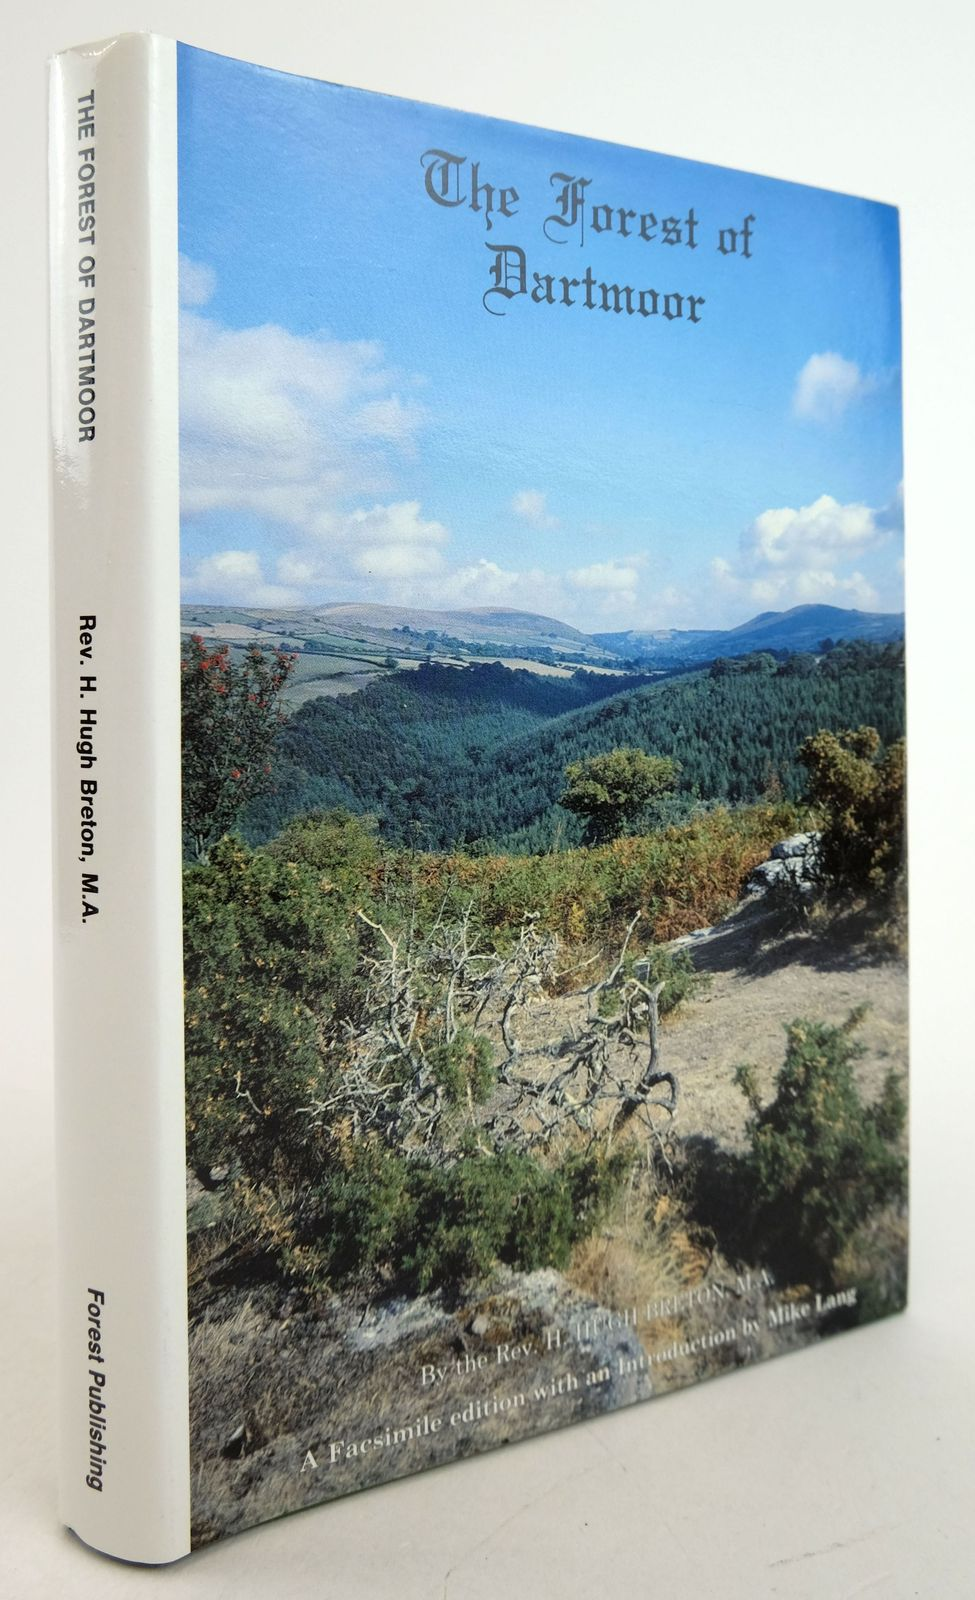 Photo of THE FOREST OF DARTMOOR written by Breton, H. Hugh published by Forest Publishing (STOCK CODE: 1819763)  for sale by Stella & Rose's Books